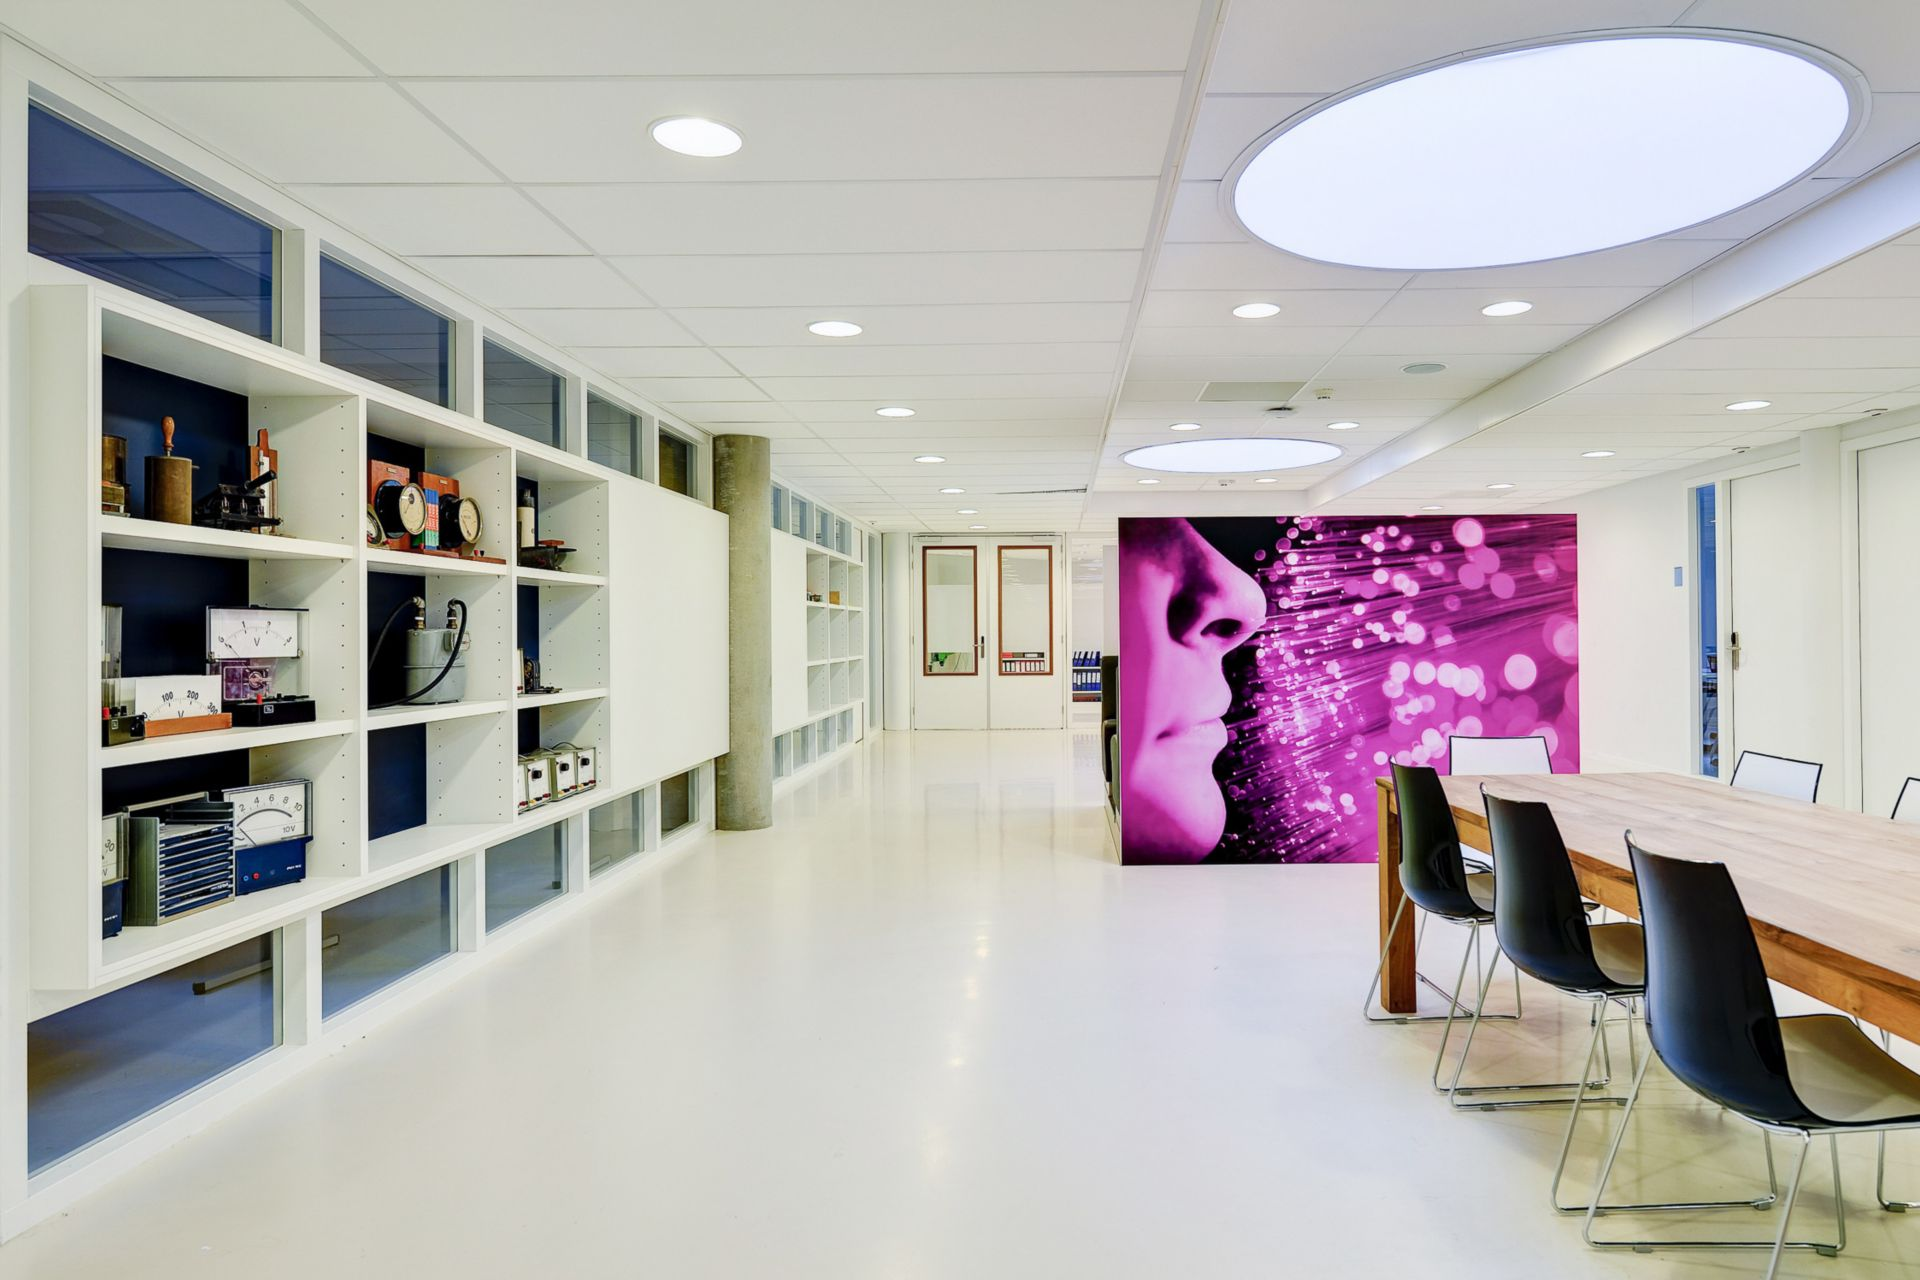 Decorative white floor made with Sika ComfortFloor system at Aloysius College in Hilversum, Netherlands